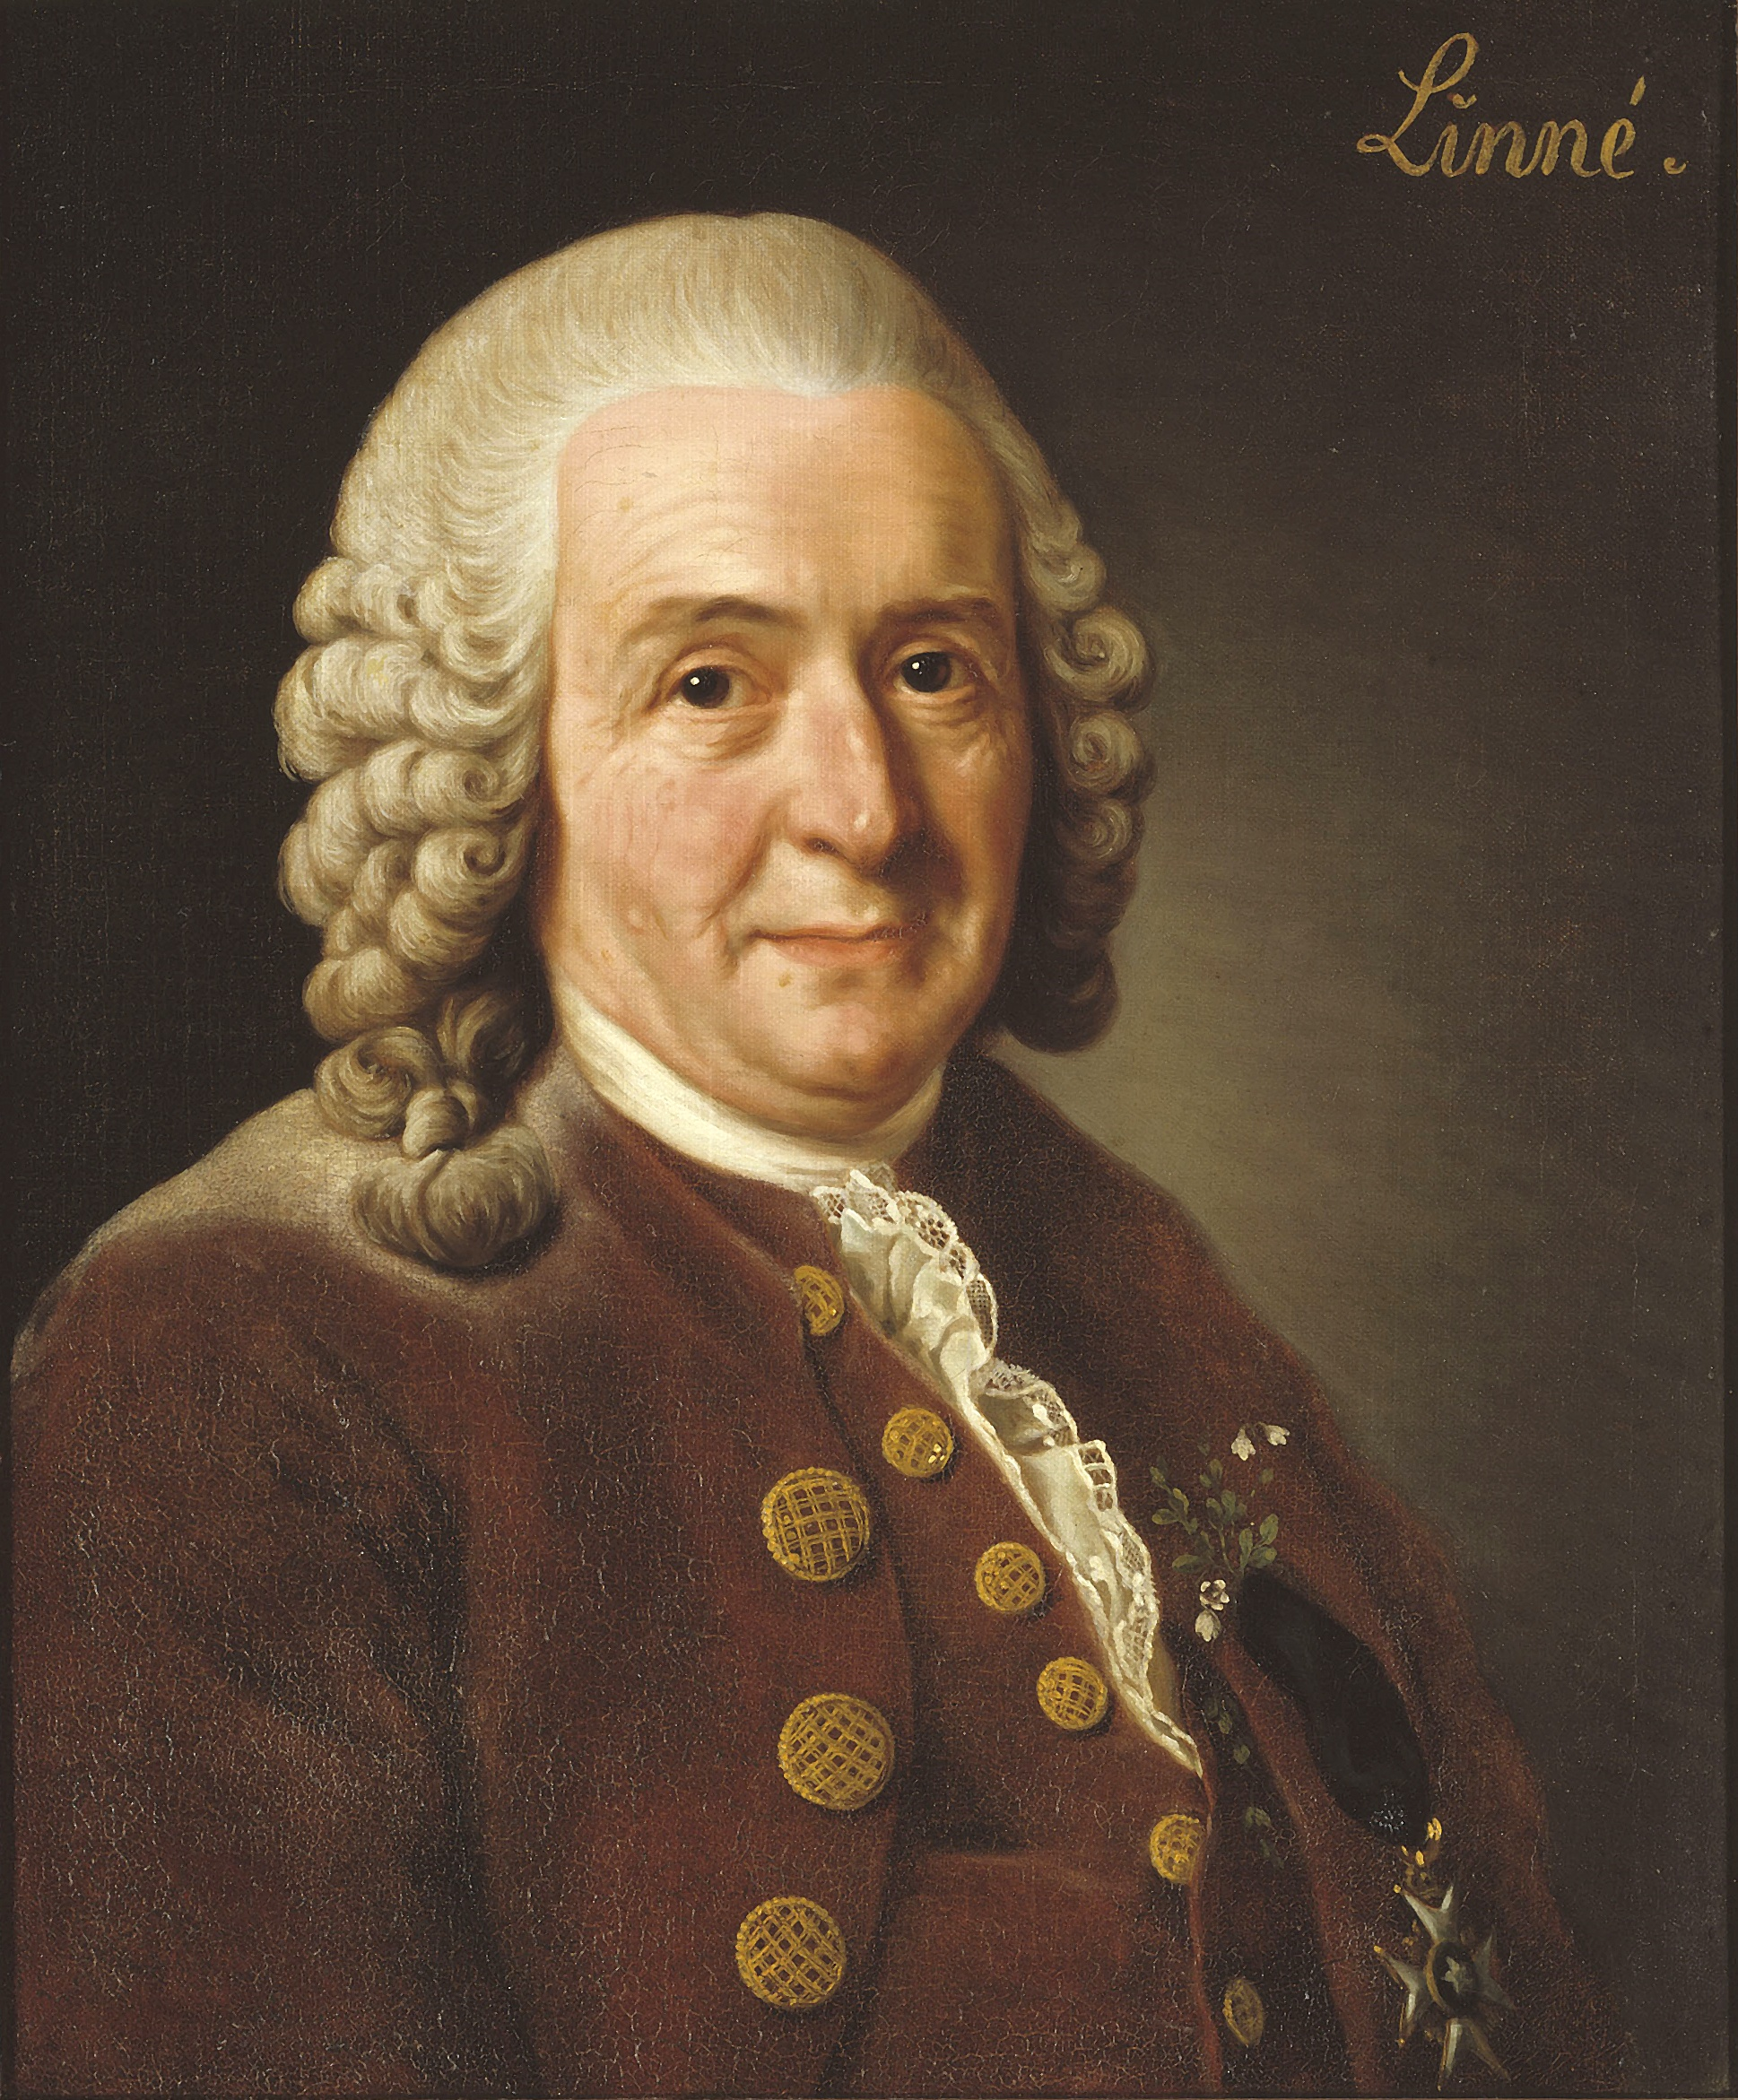 Carl von Linné, Alexander Roslin, 1775. Currently owned by and displayed at the Royal Swedish Academy of Sciences.